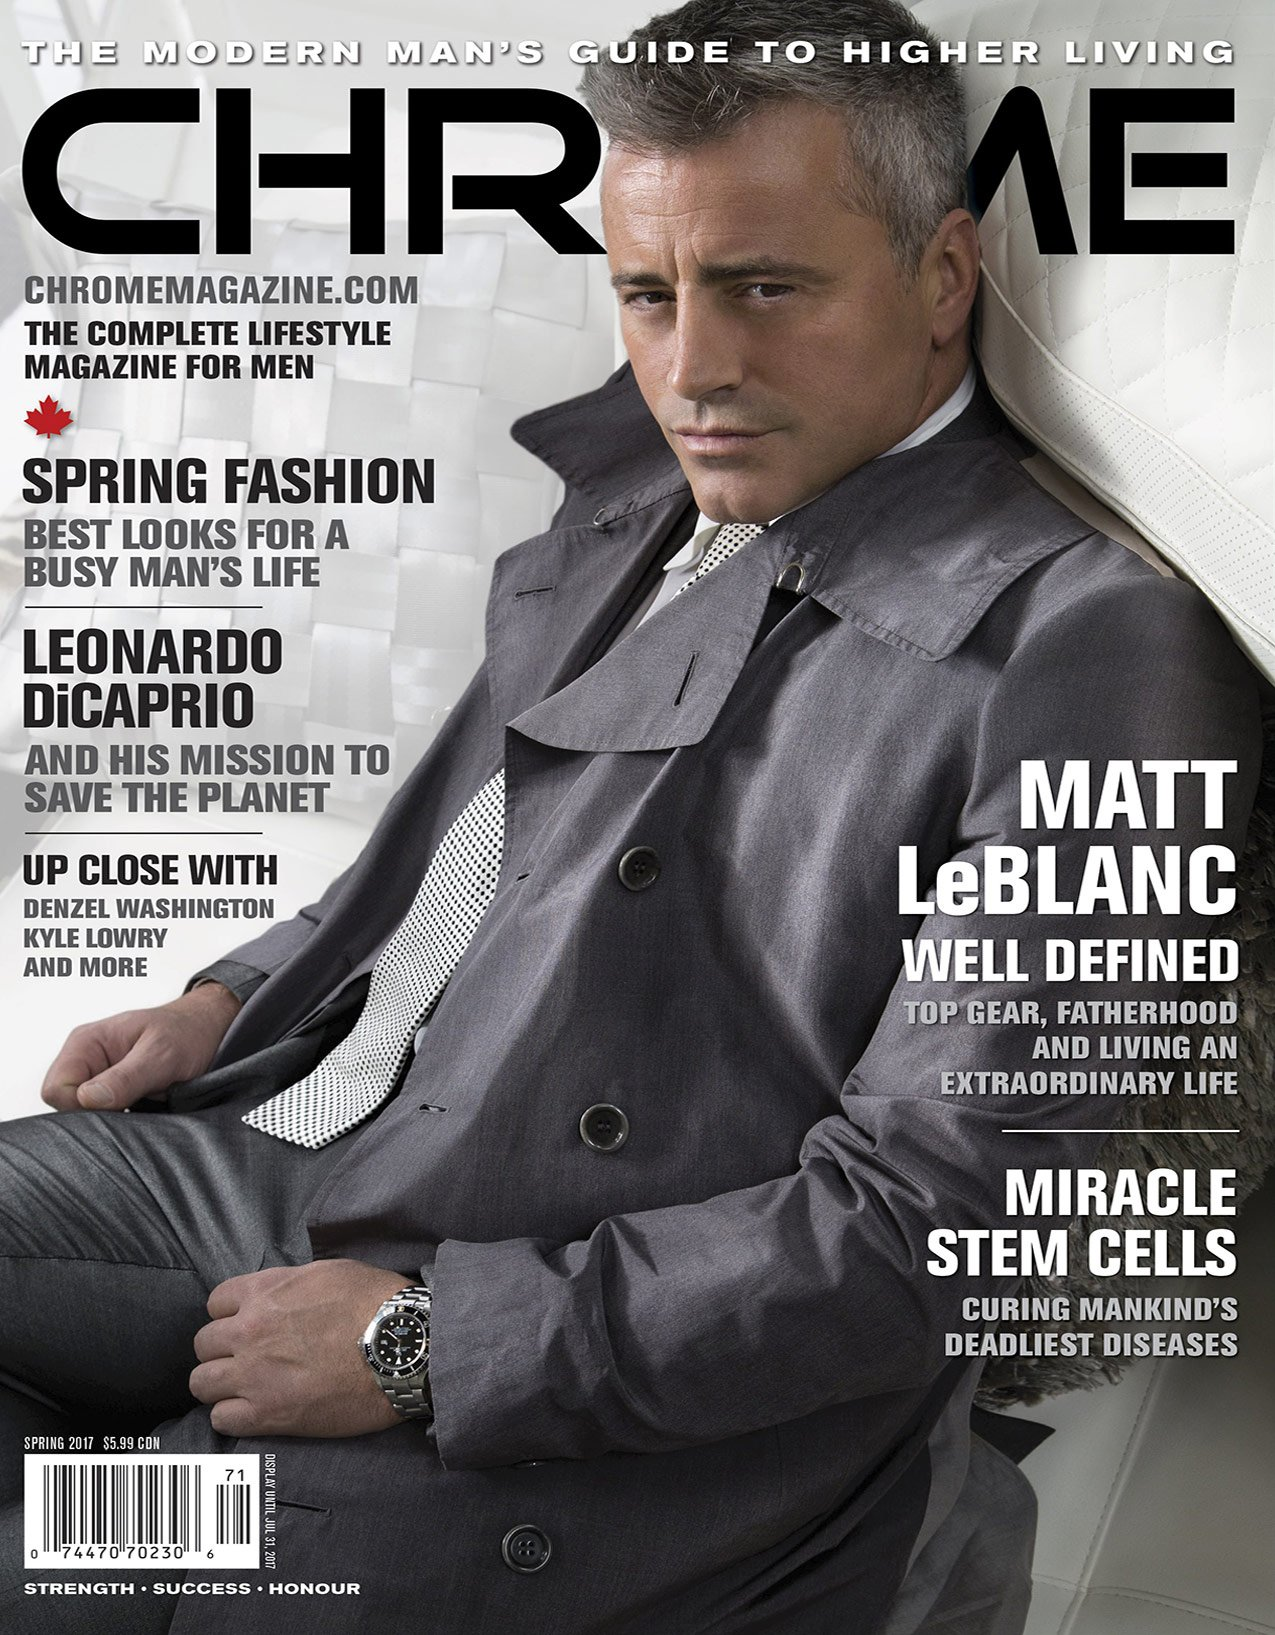 Chrome Magazine